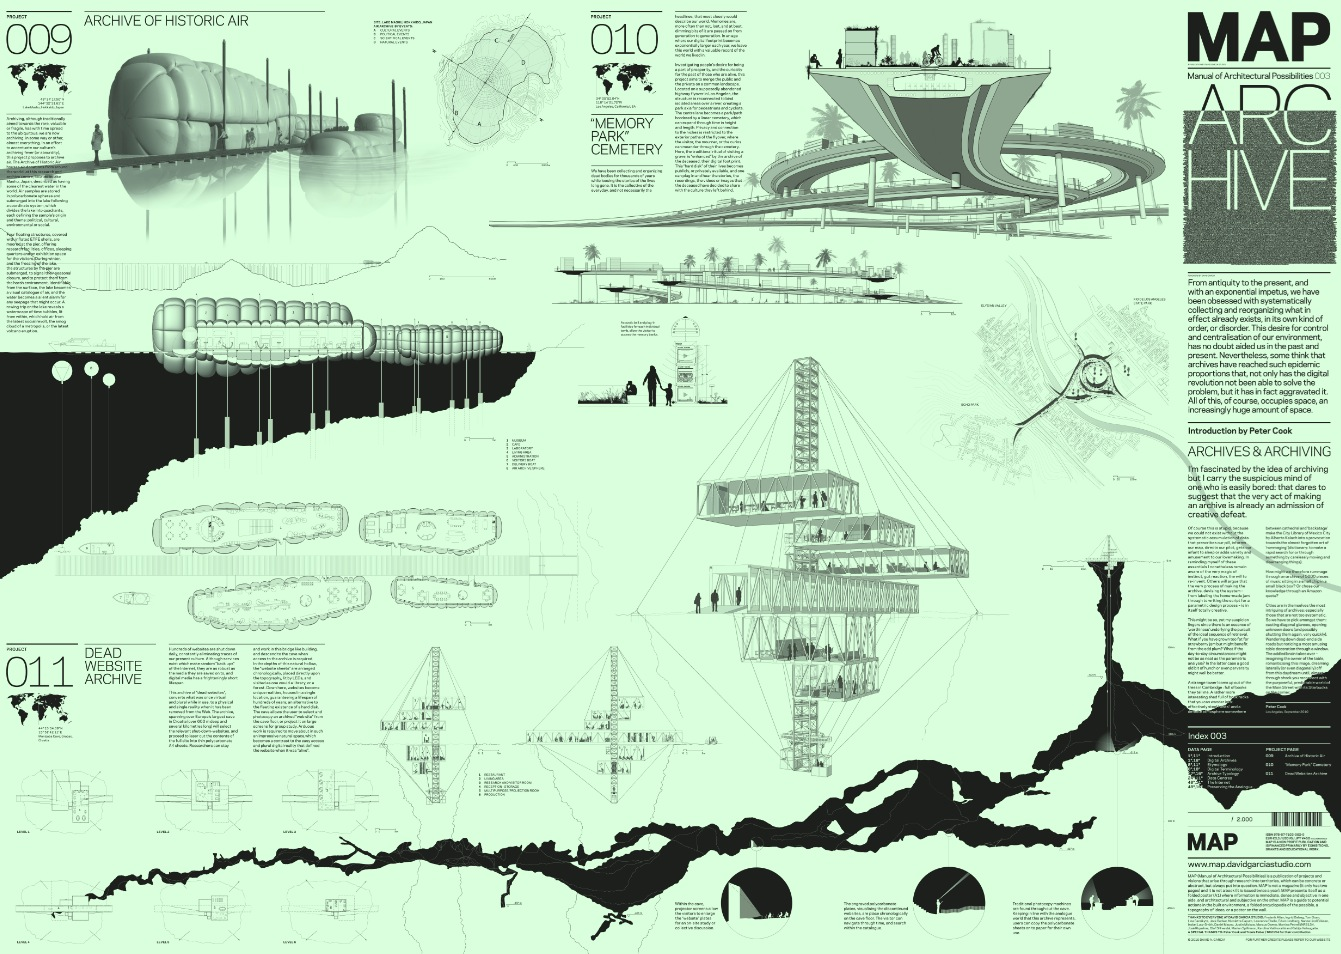 1b1c3947a44a781a2b1988d095178c78 architecture mapping architecture graphics map